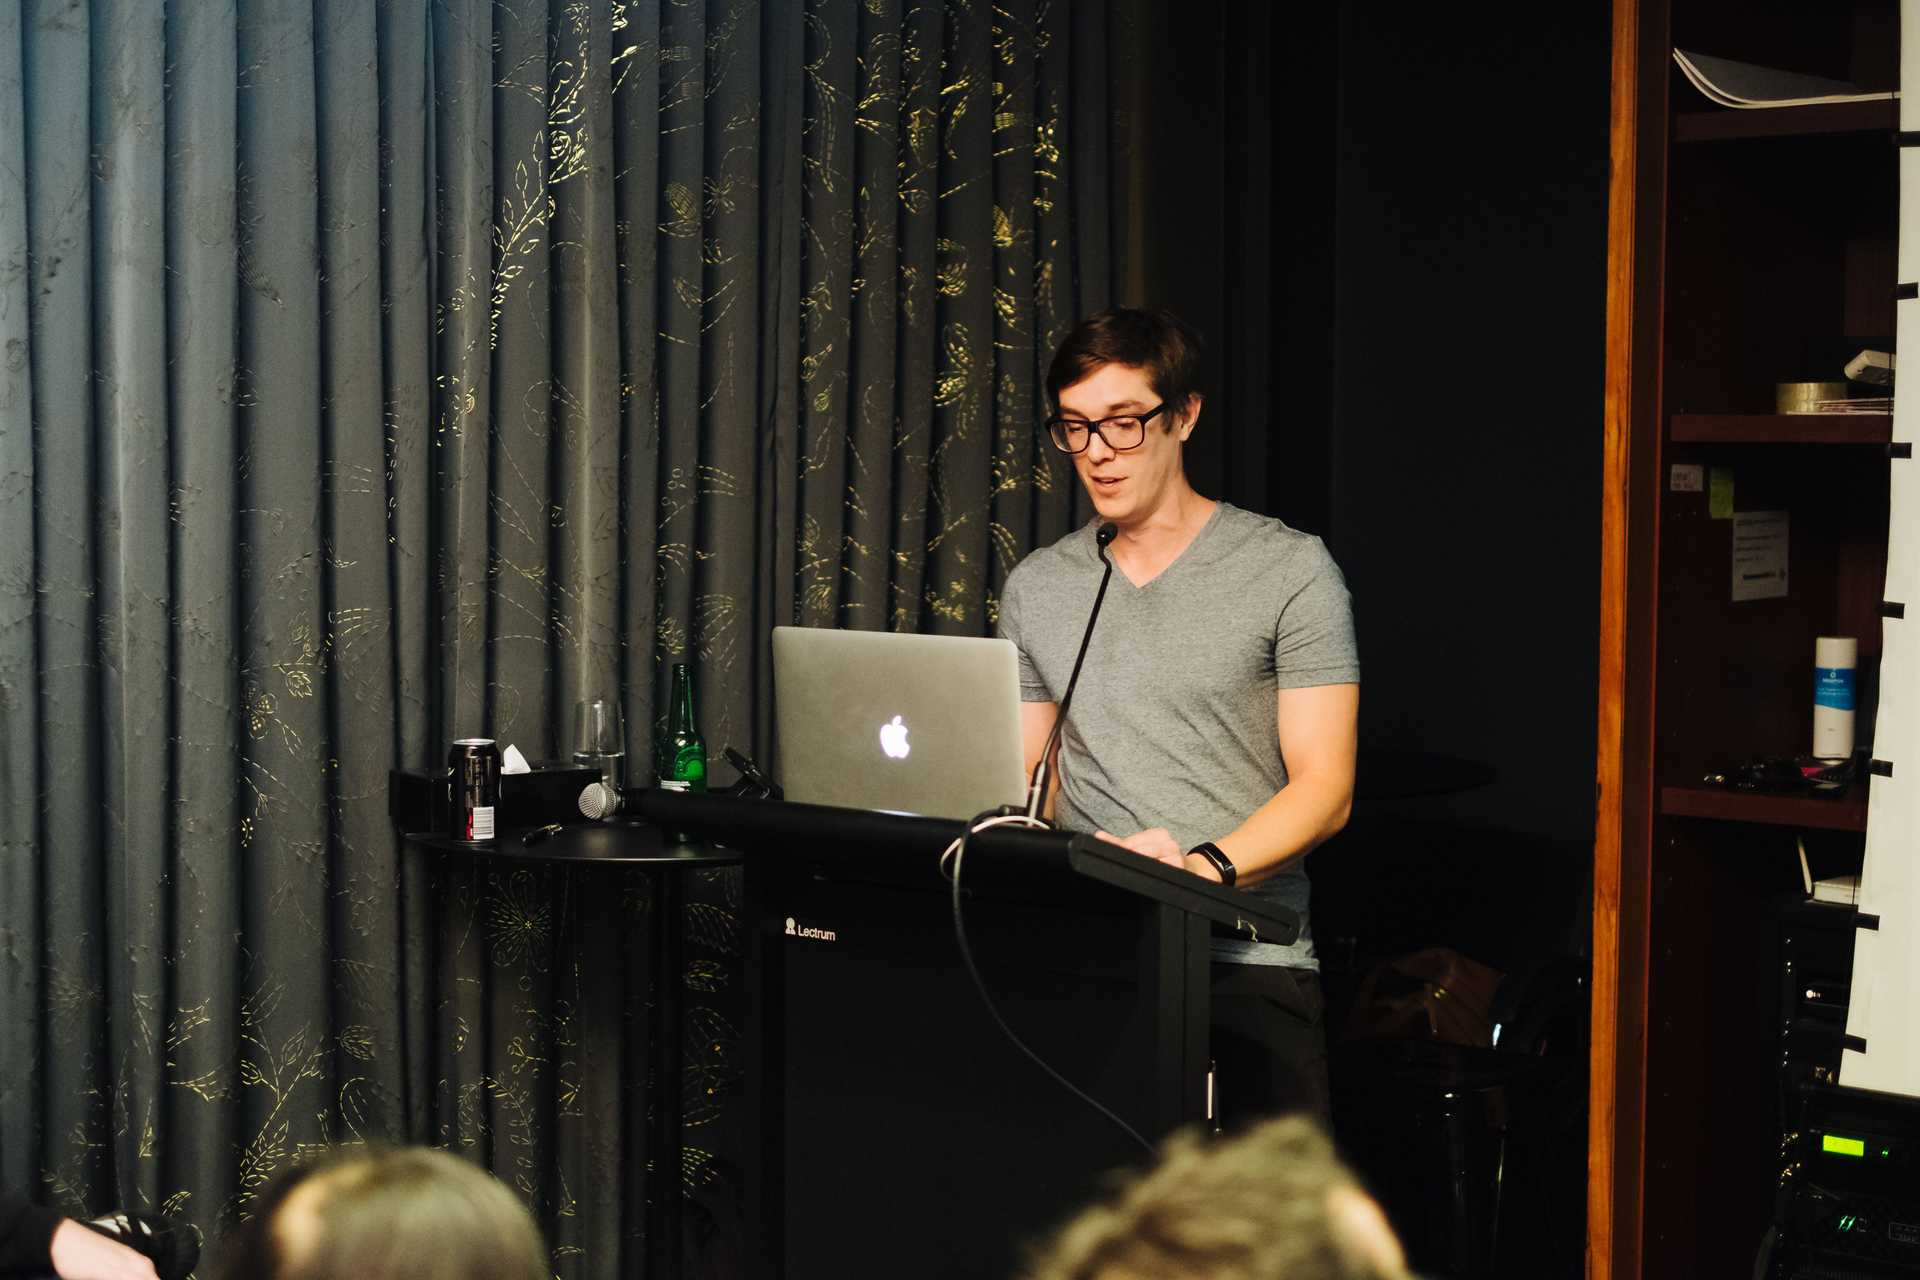 Ben Booth presenting this talk at SydCSS